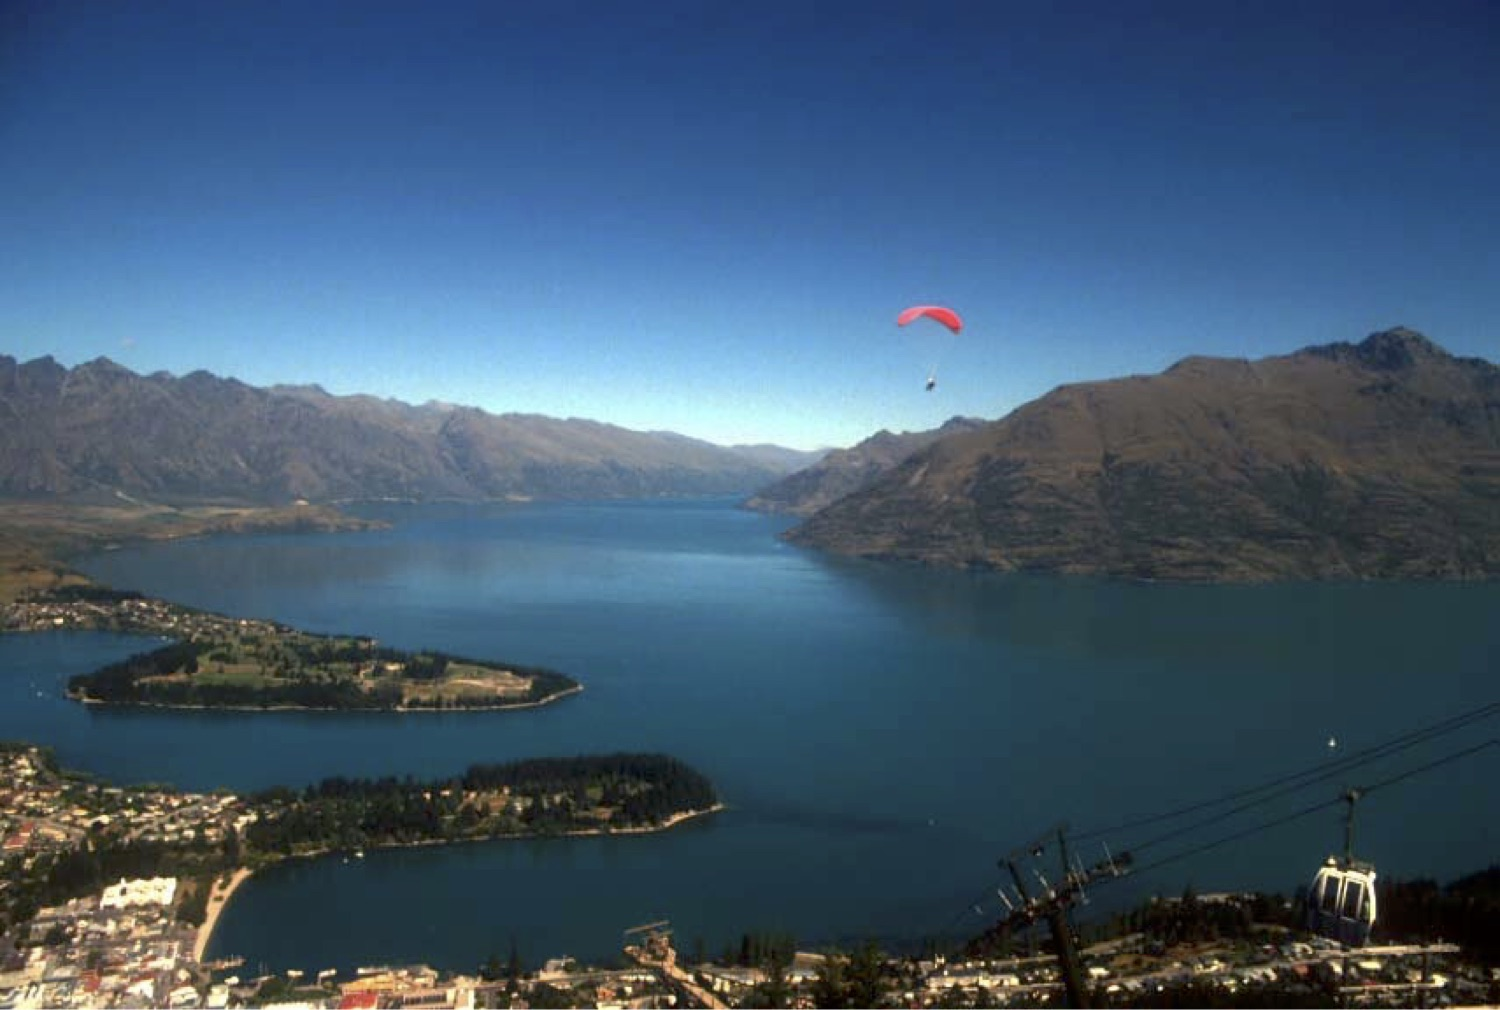 File Skydiver Over Lake Wakatipu Queenstown New Zealand 1994 Jpg